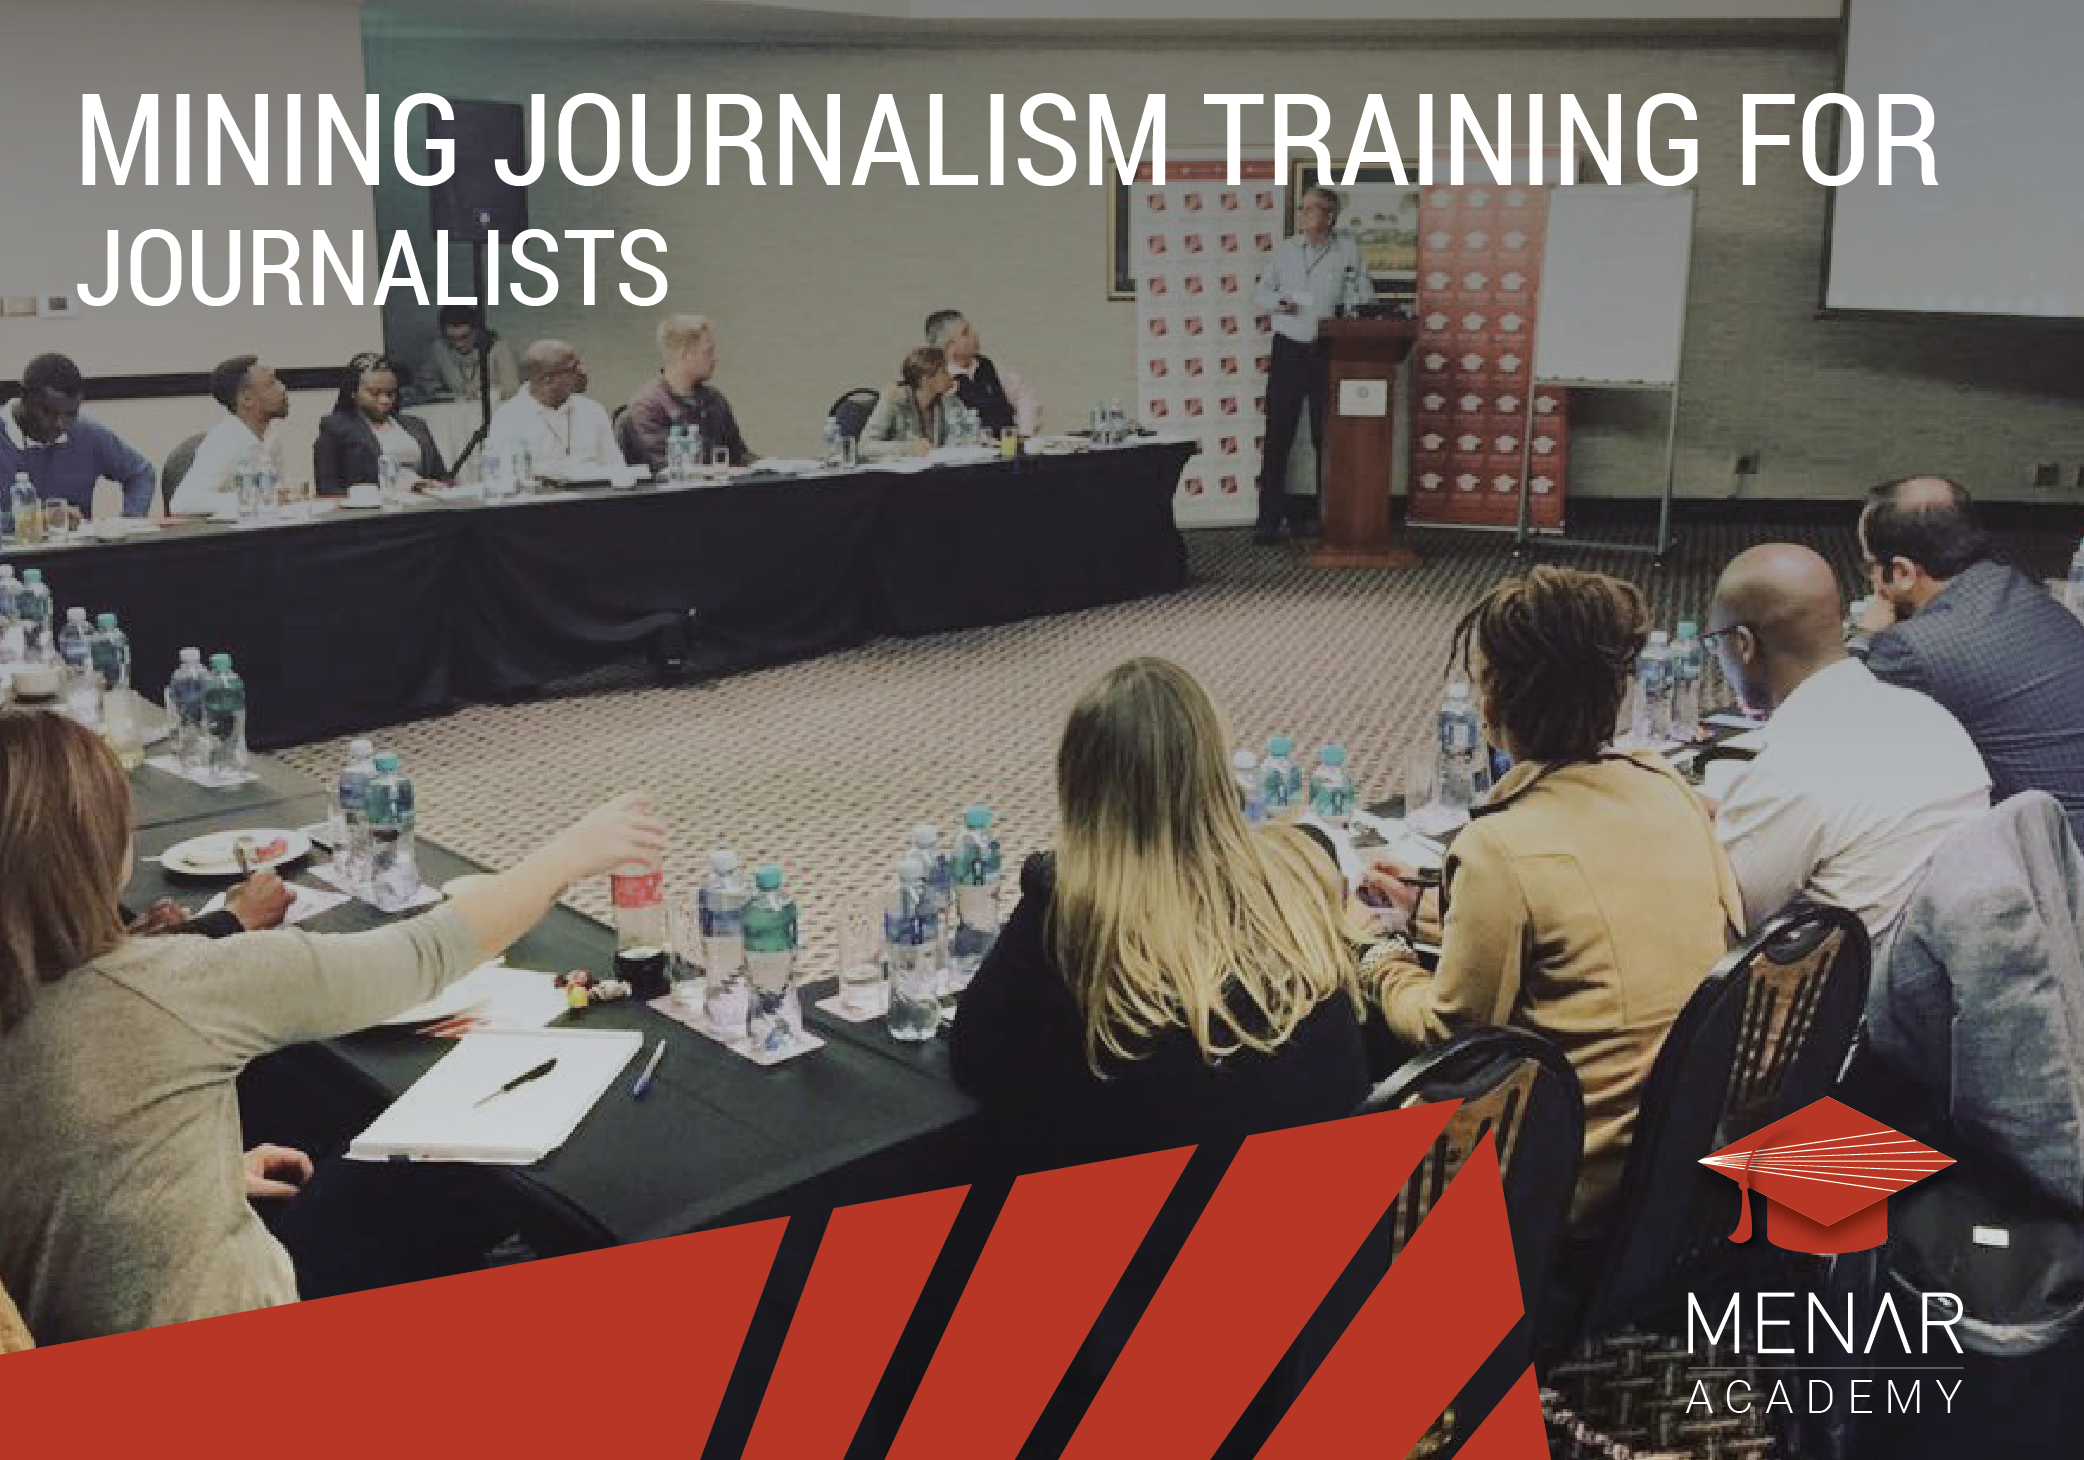 MINING JOURNALISM TRAINING  Mining experts and senior journalists lectured for mining journalism... Read more